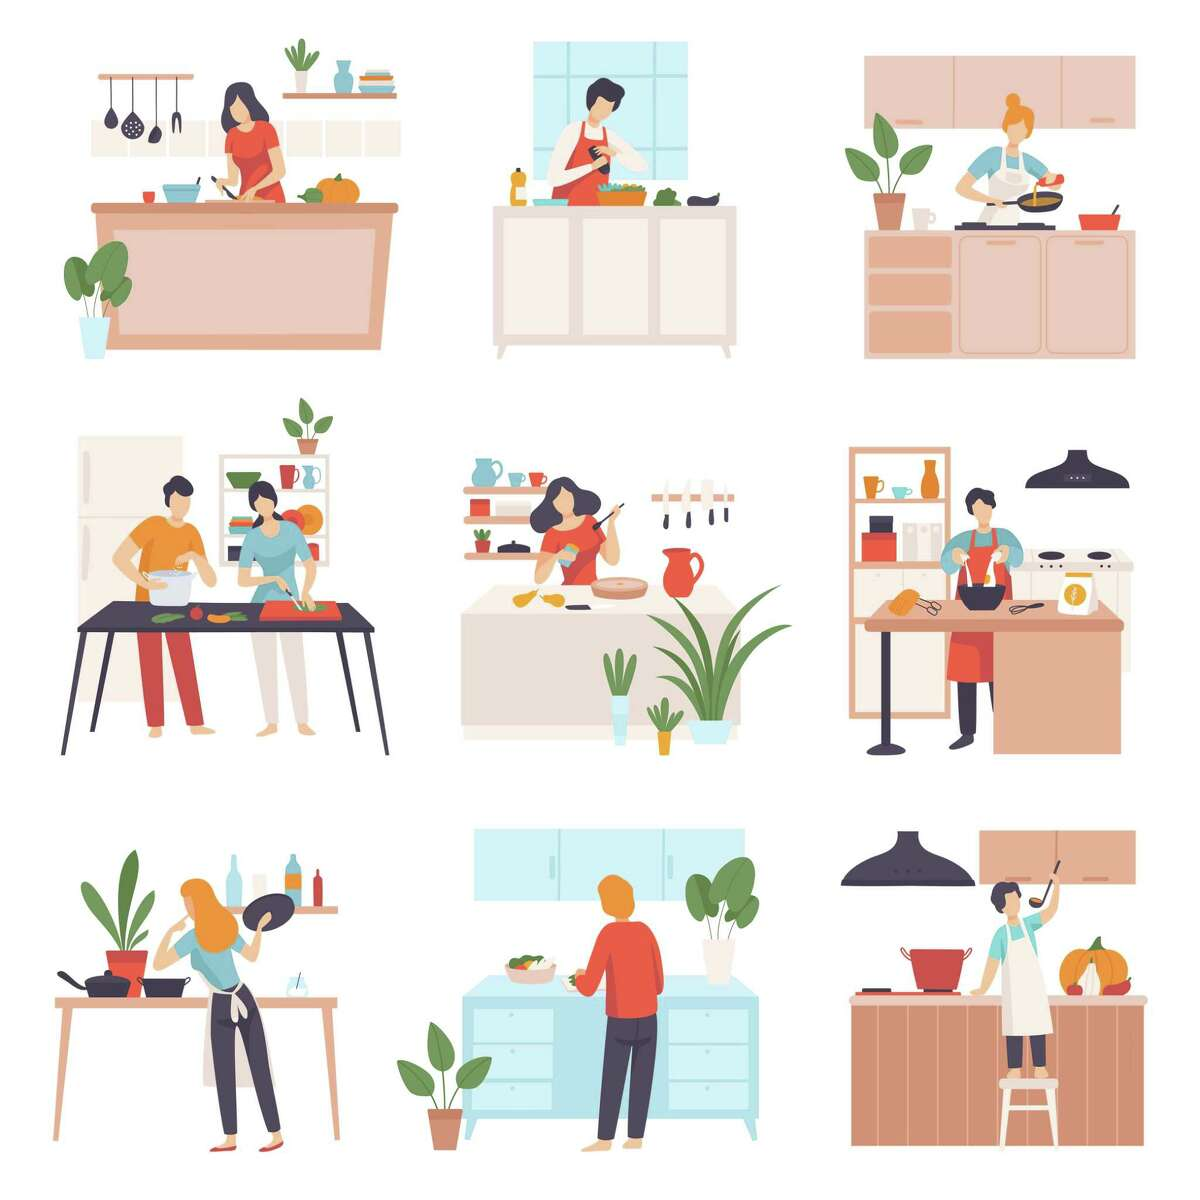 Set of images of people in the kitchen during the cooking process. Vector illustration.